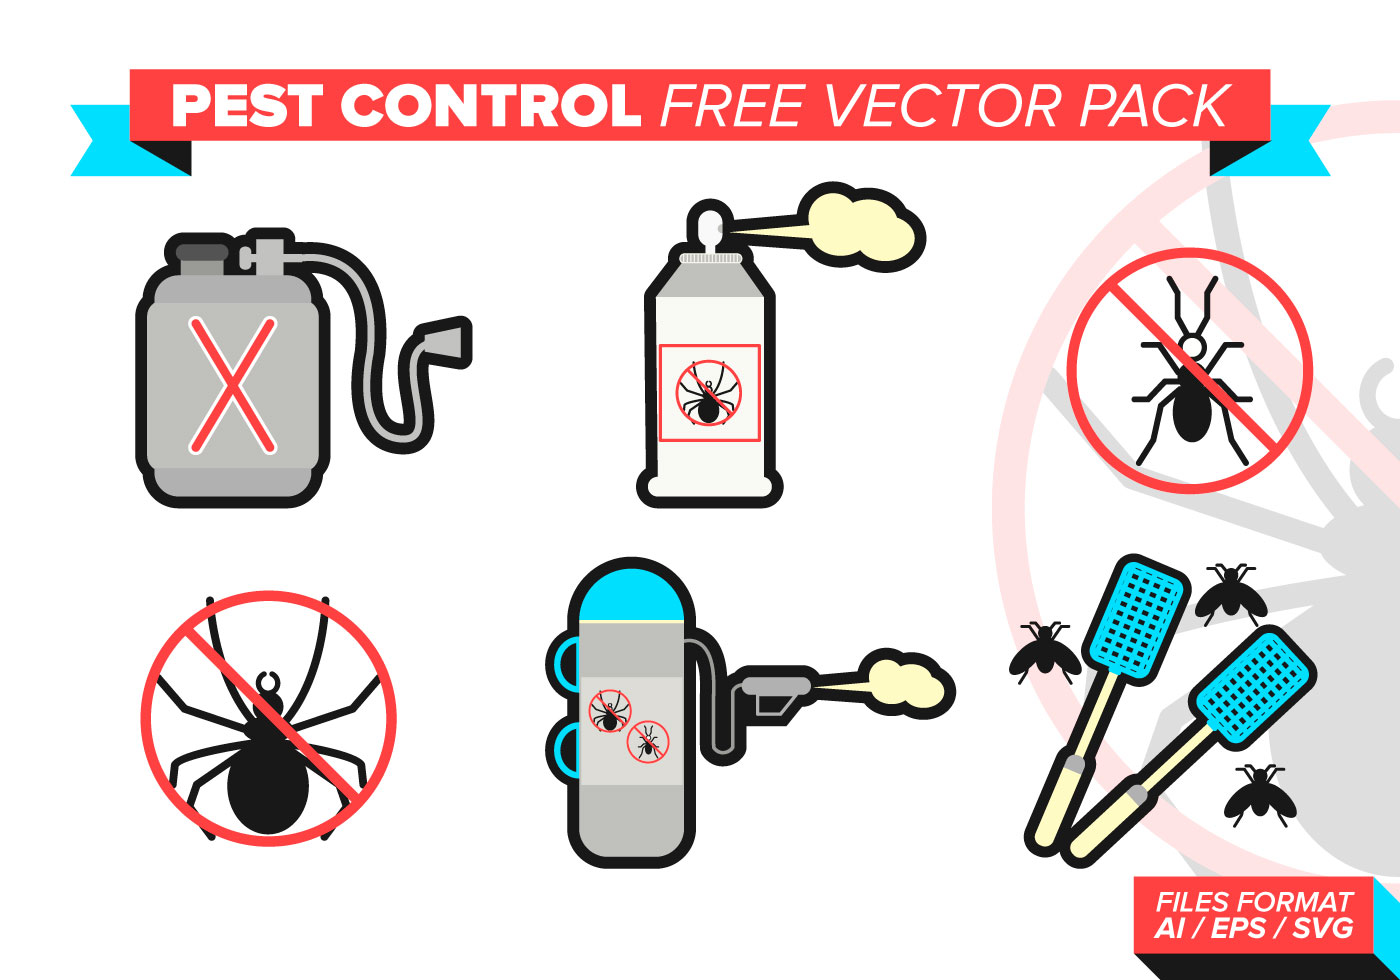 pest-control-icons-free-vector-pack.jpg